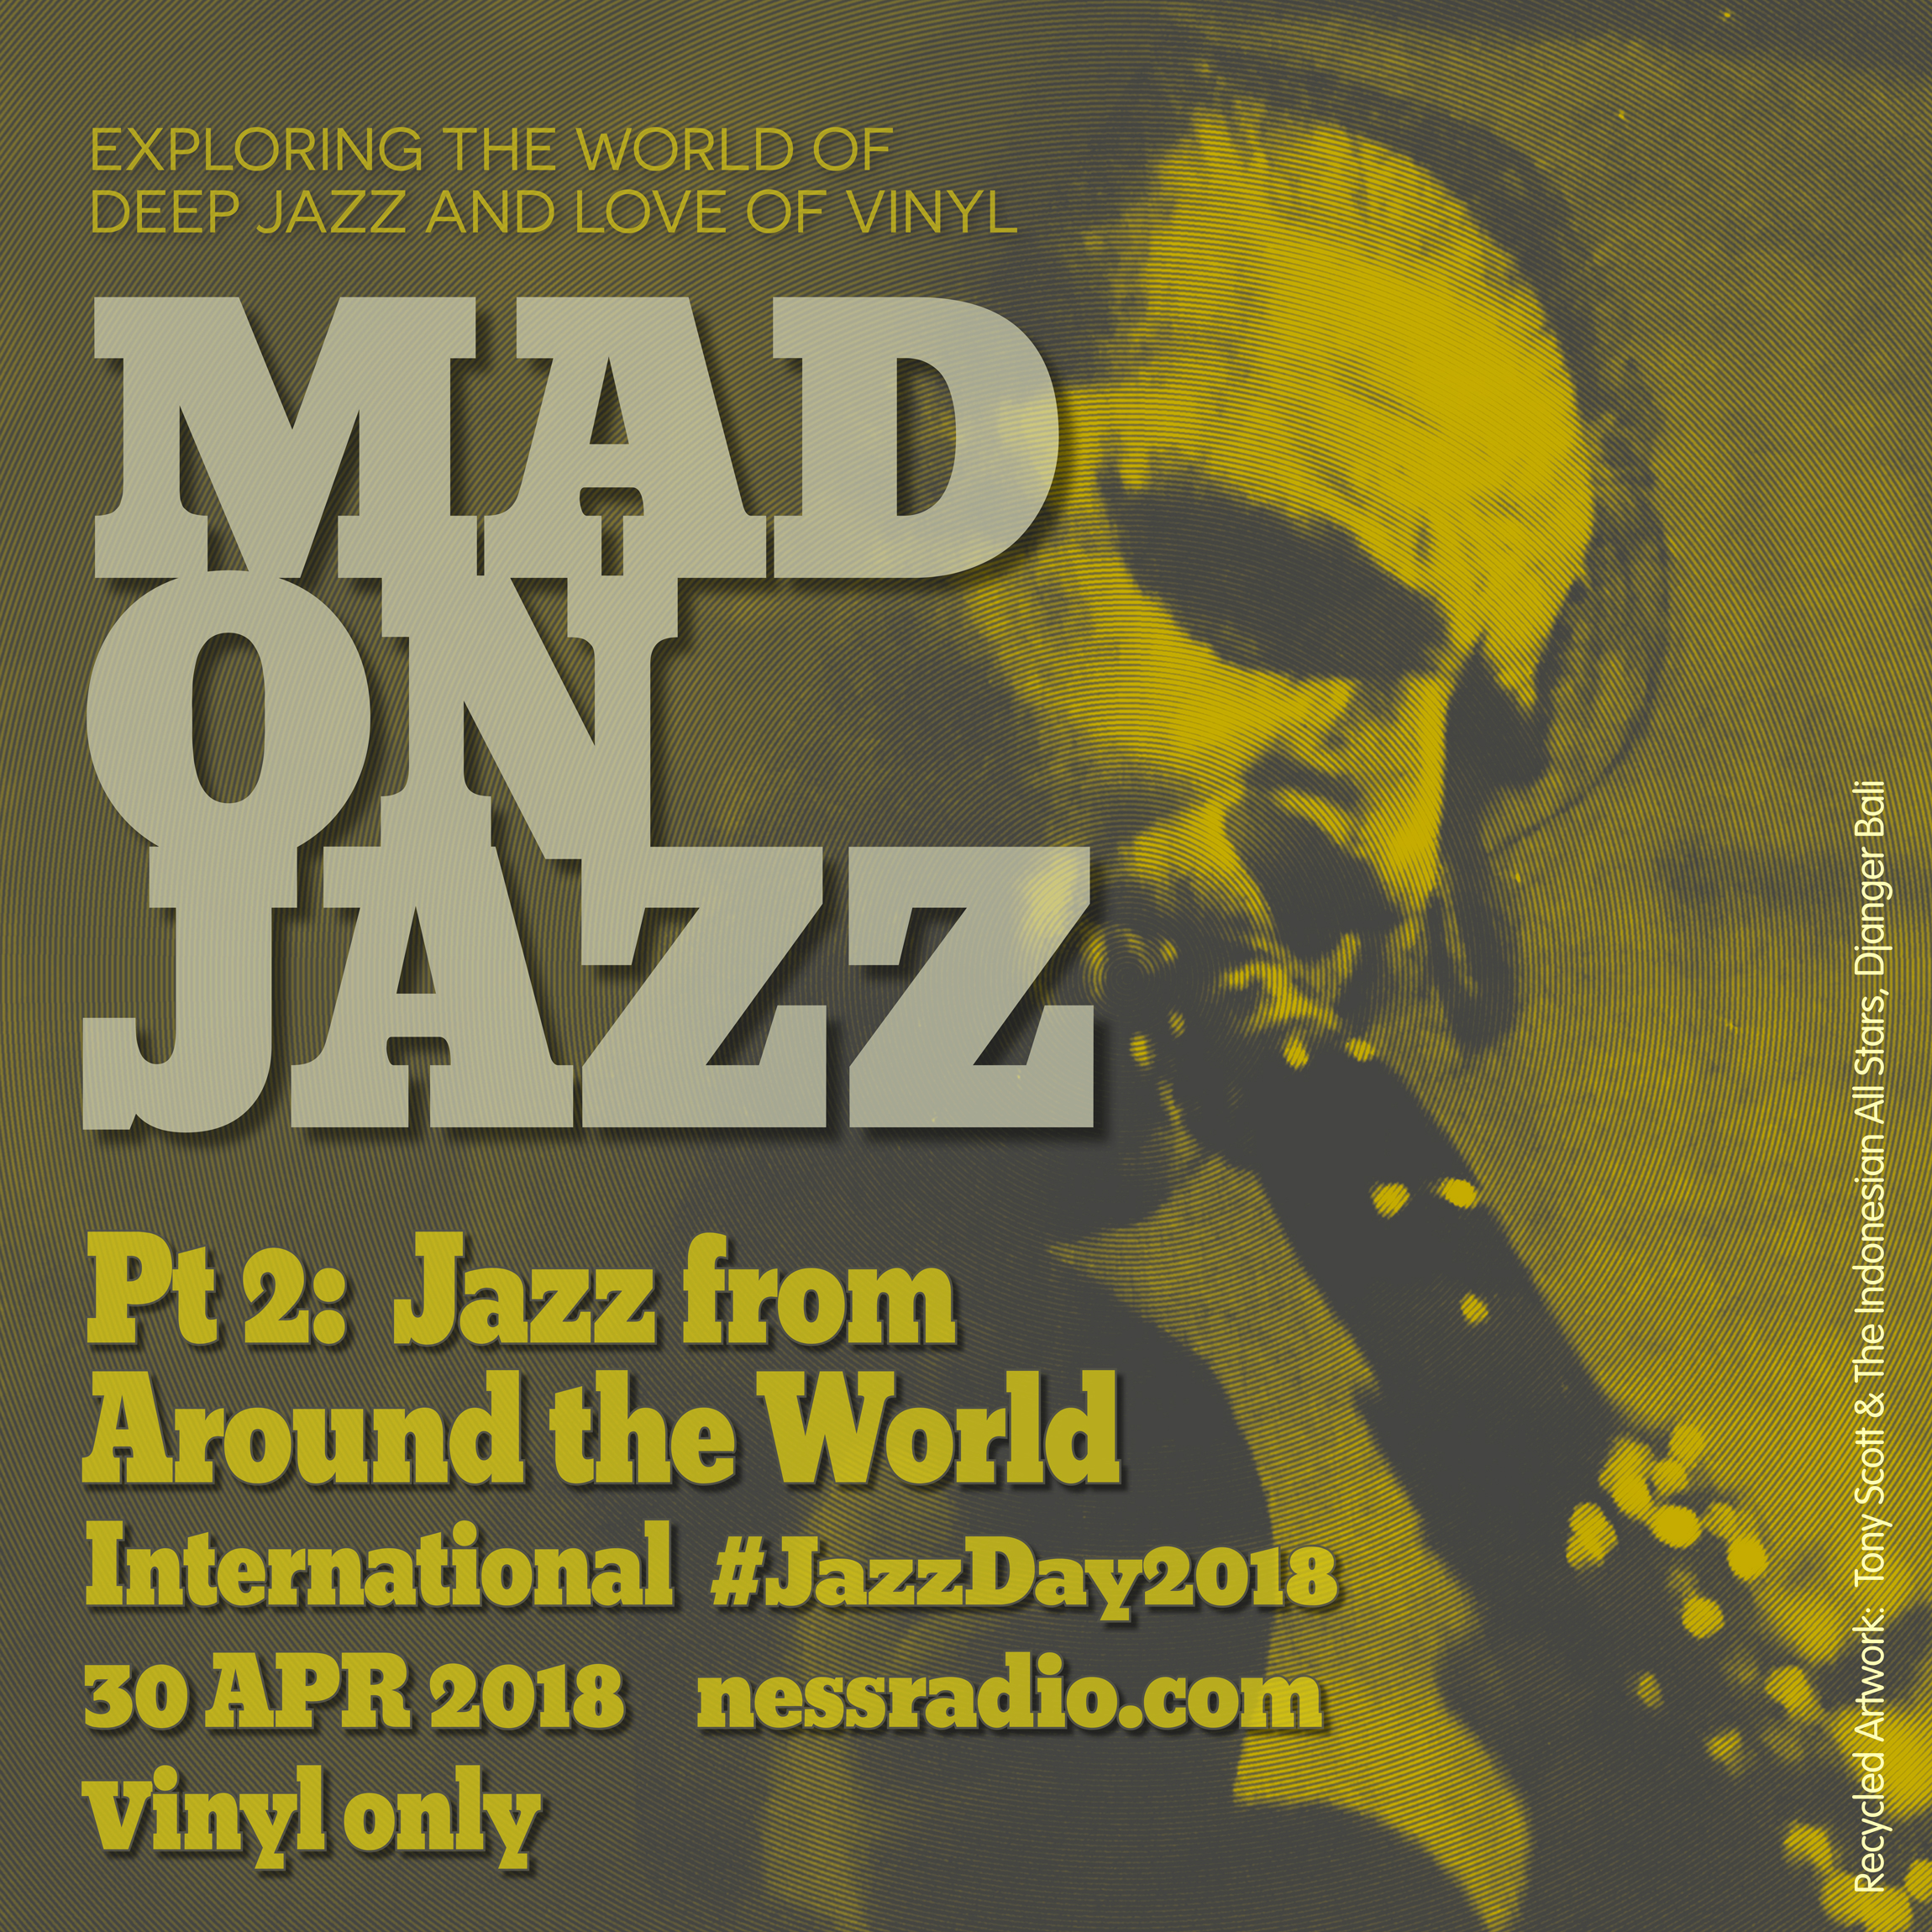 MADONJAZZ International Jazz Day special Pt 2: Jazz From Around the World